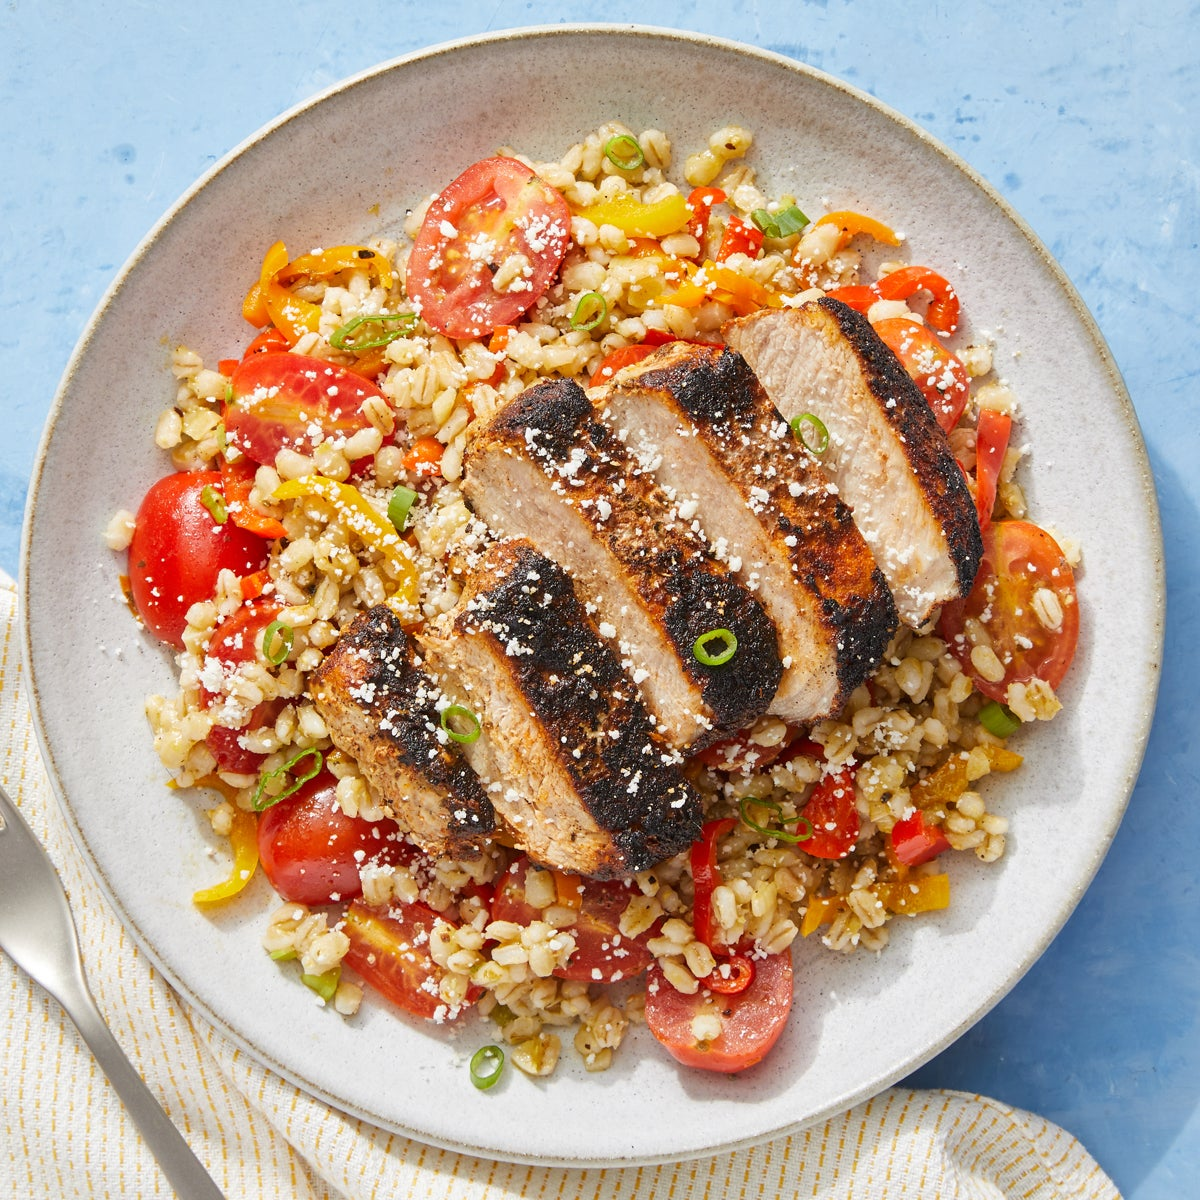 Mexican-Spiced Pork Chops with Tomatillo Barley & Cotija Cheese